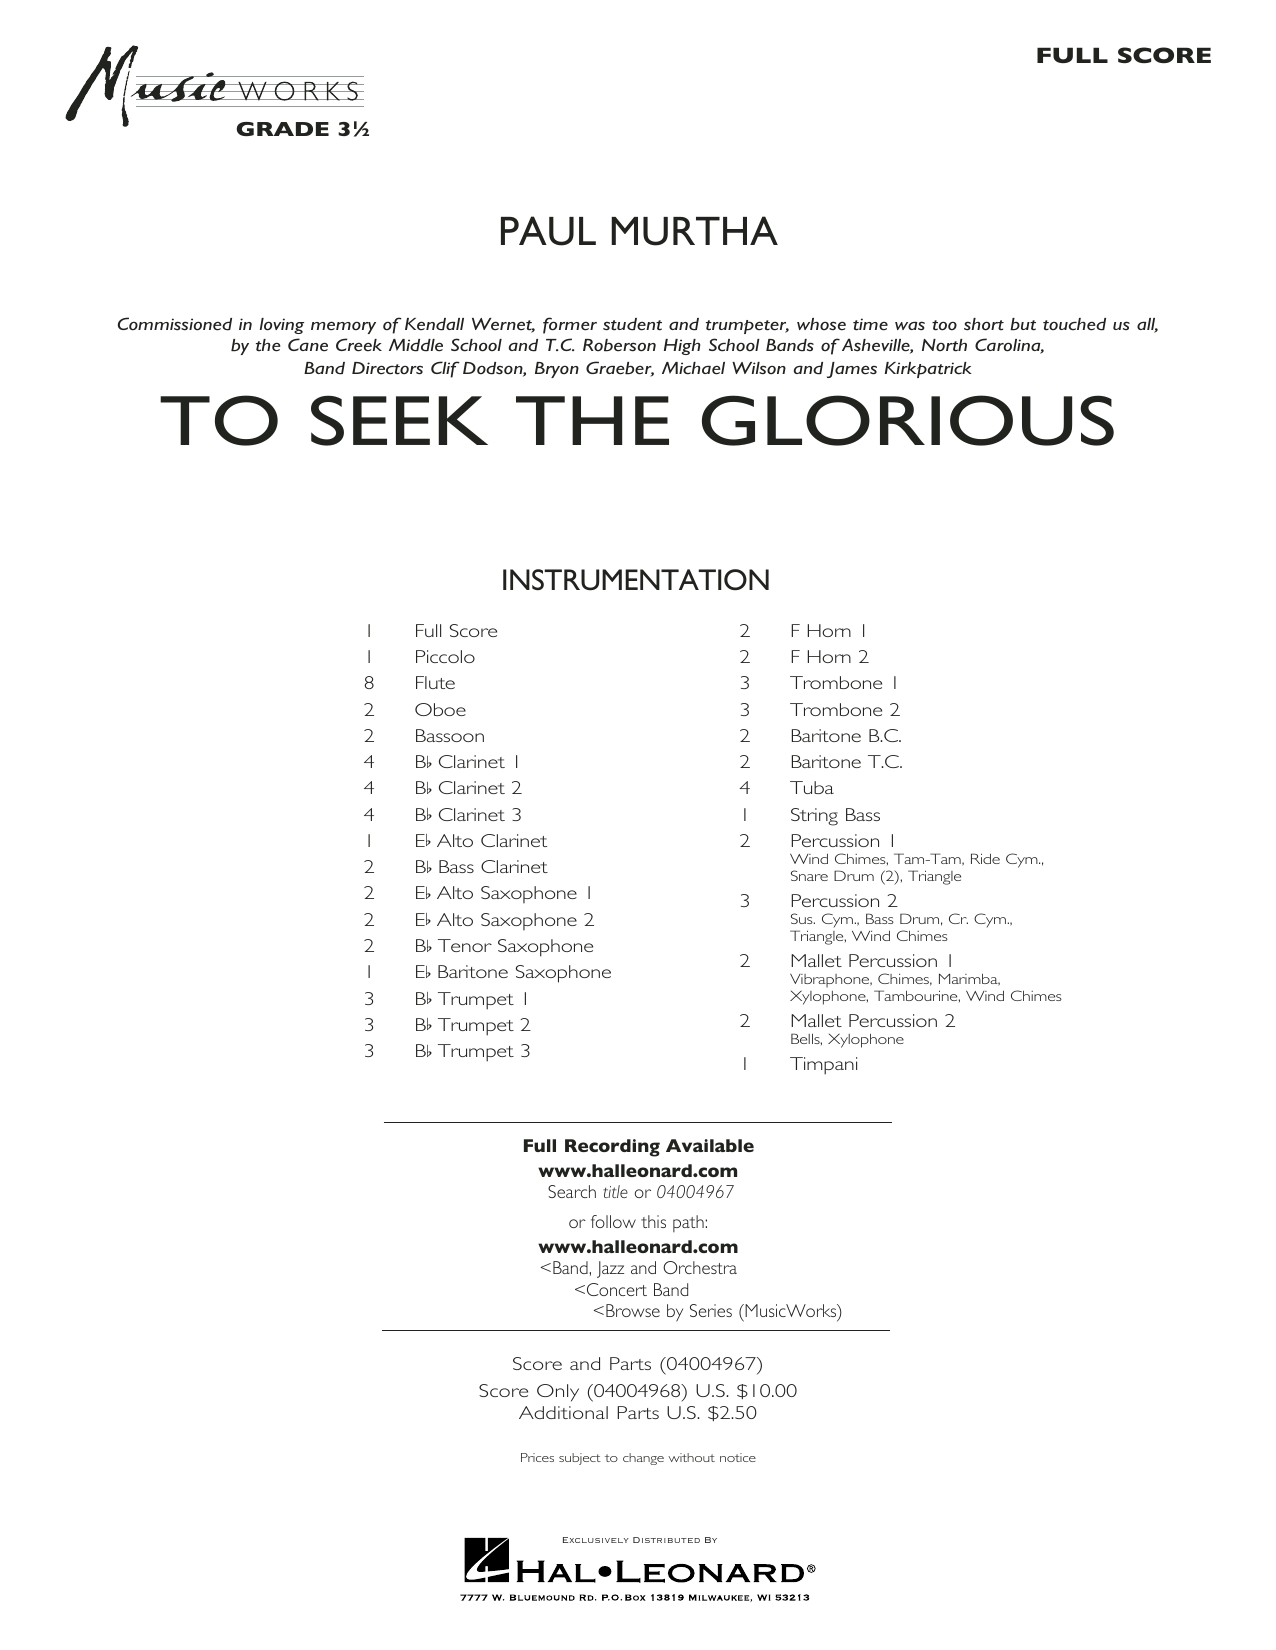 To Seek the Glorious - Conductor Score (Full Score) Sheet Music